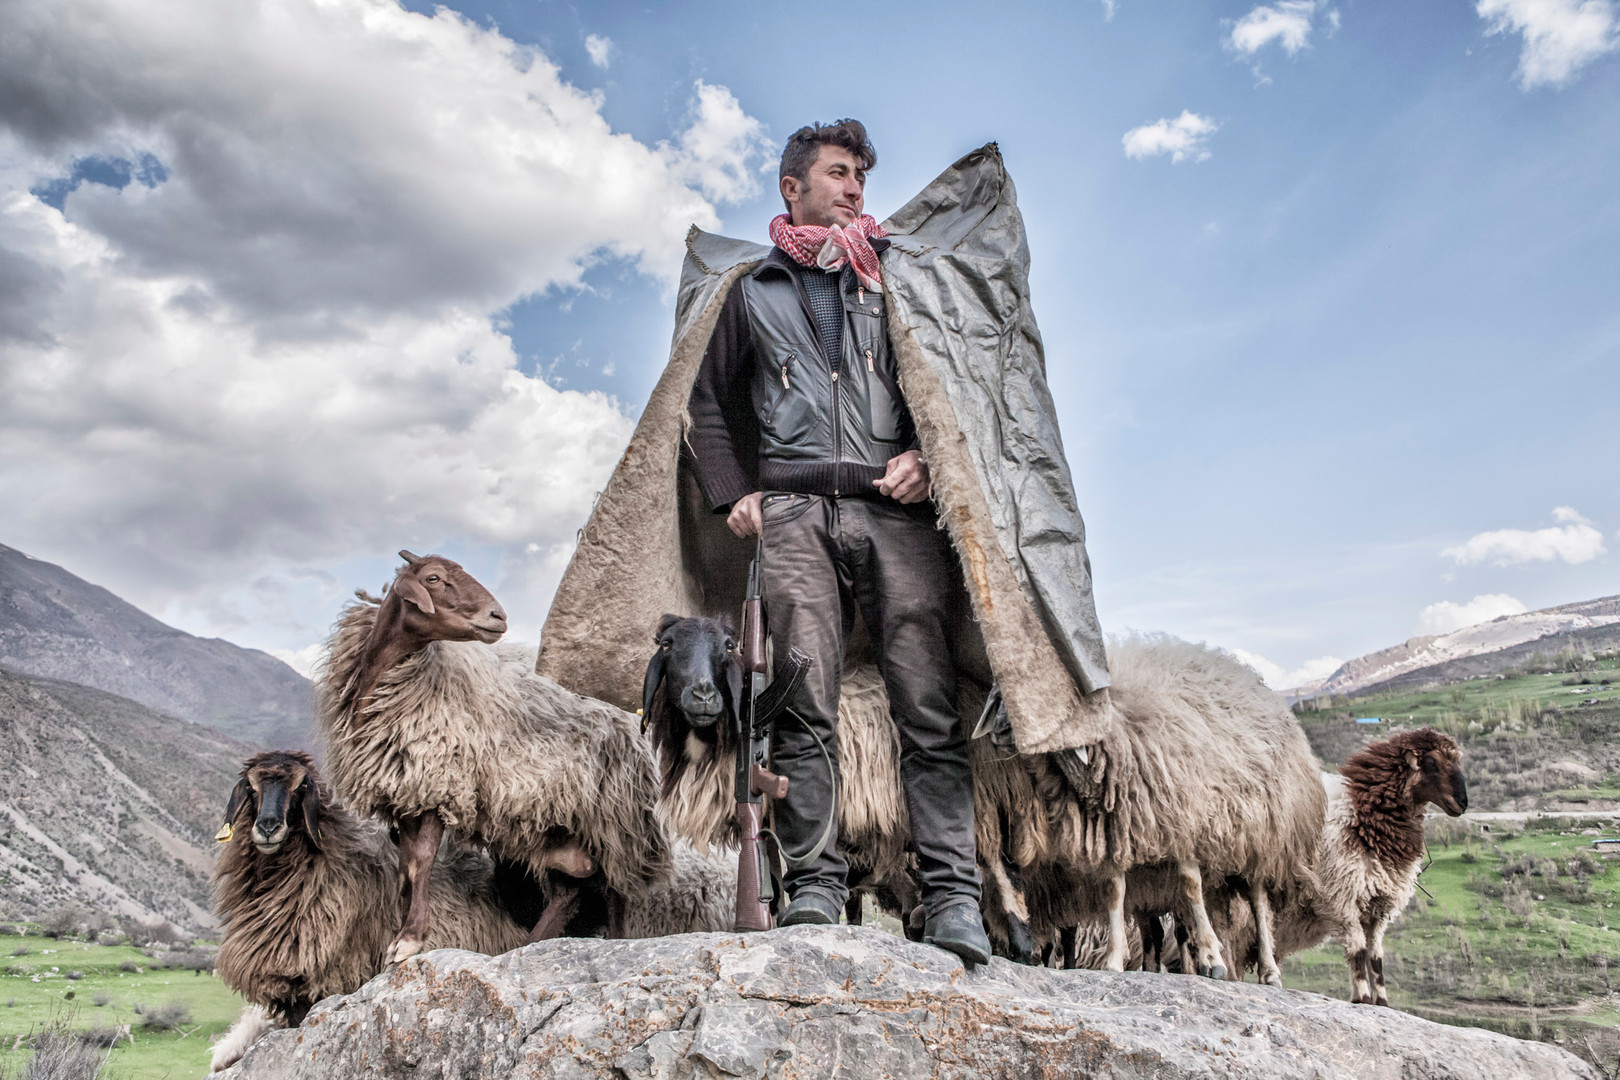 Shepherds wear felt cloaks to protect themselves from the cold. In addition, they carry guns to protect themselves from animal predators. Alakaynak, Van. April 2015.